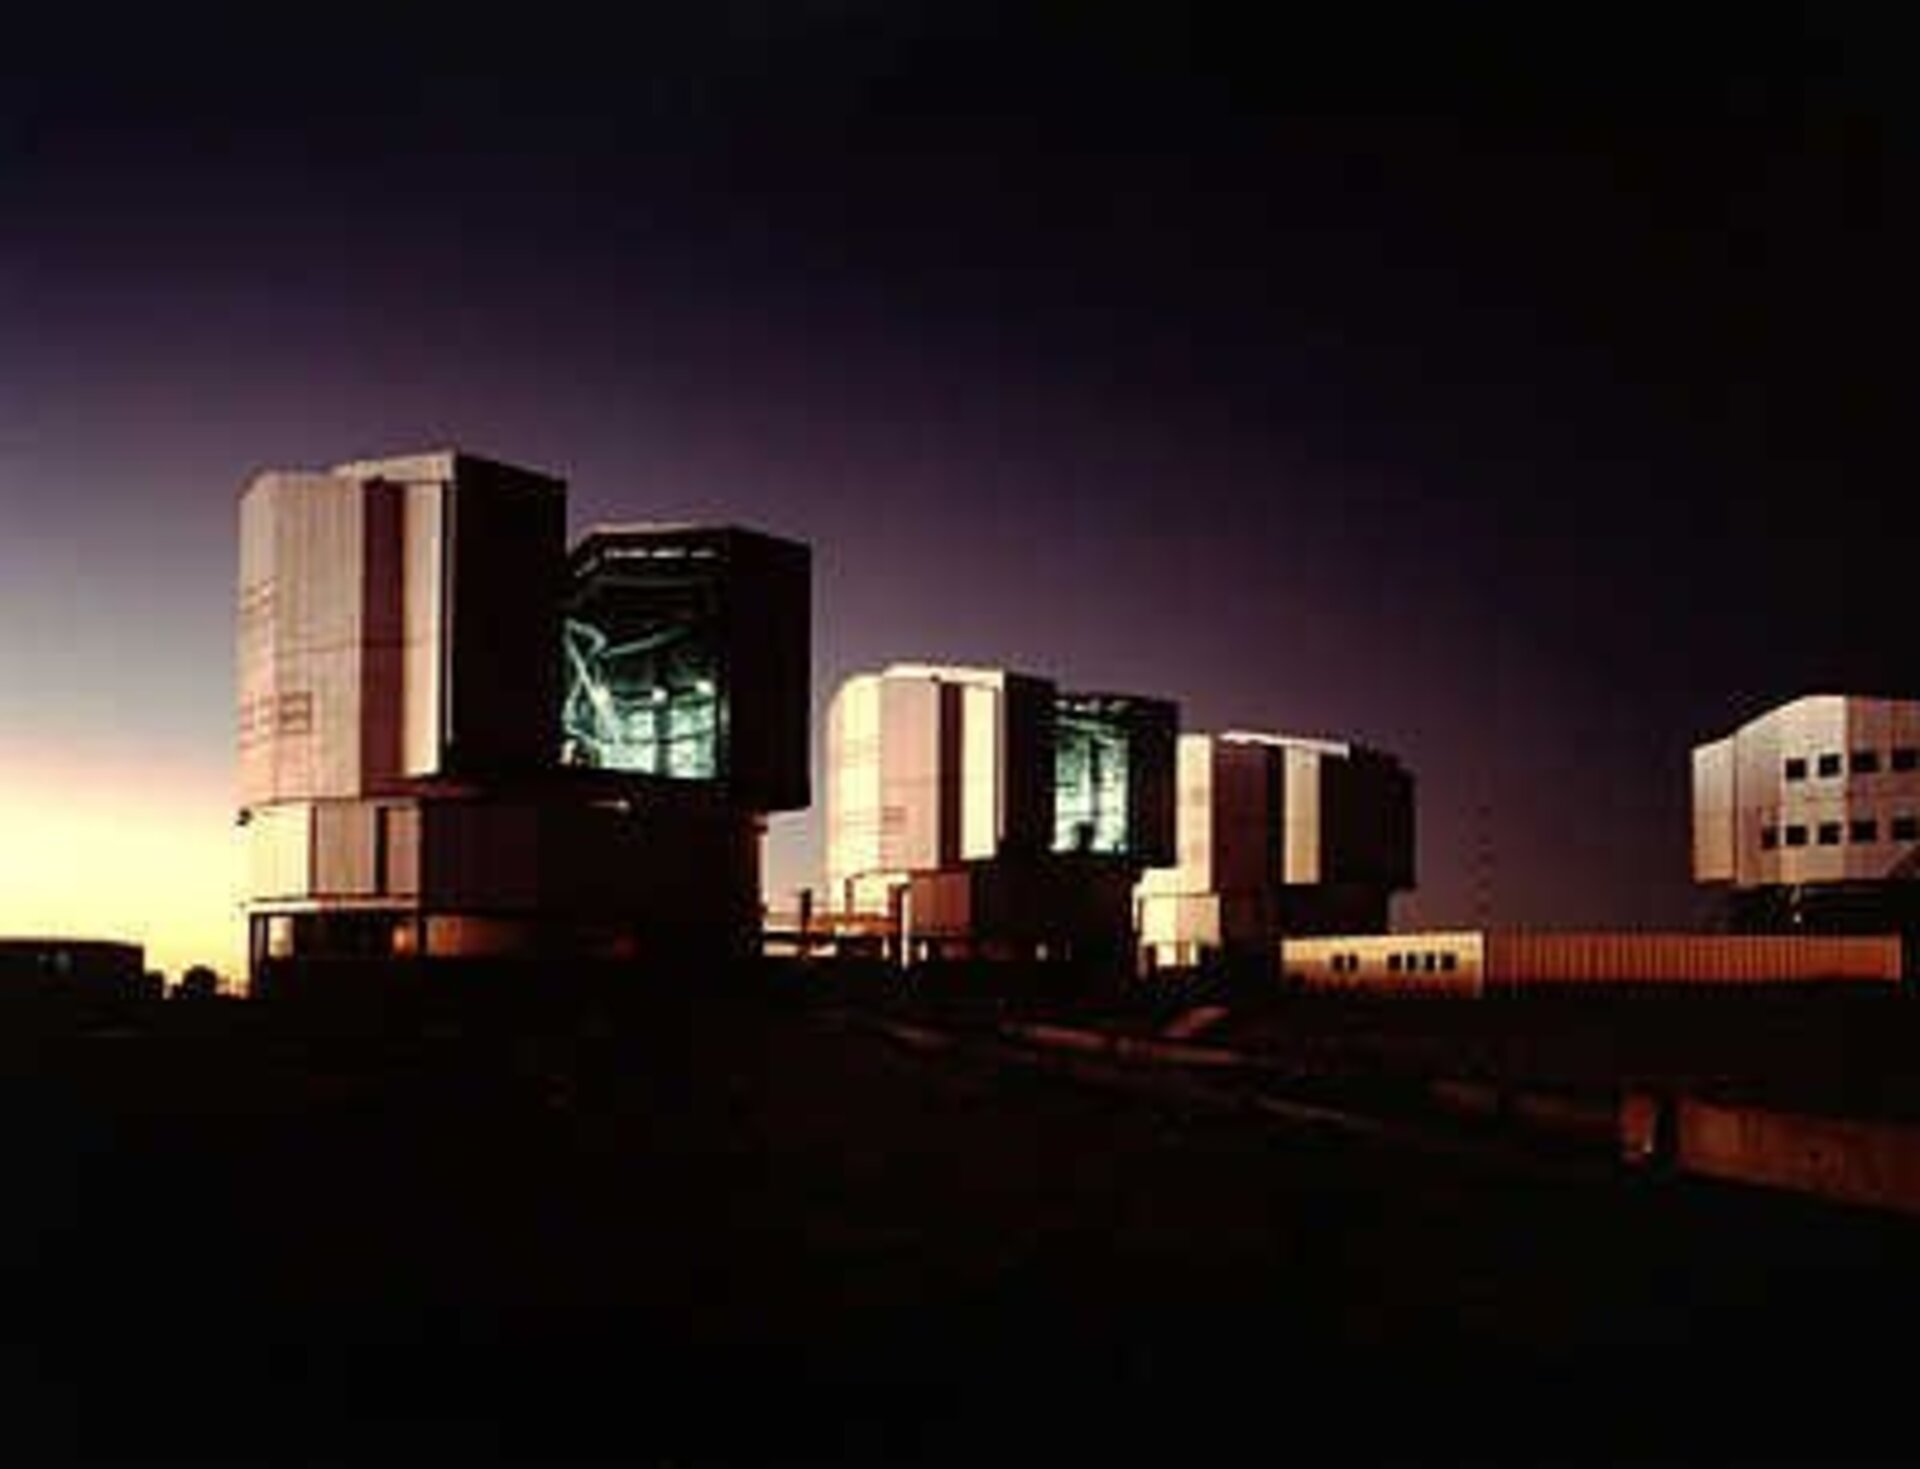 ESO's Very Large Telescope (VLT) at Cerro Paranal